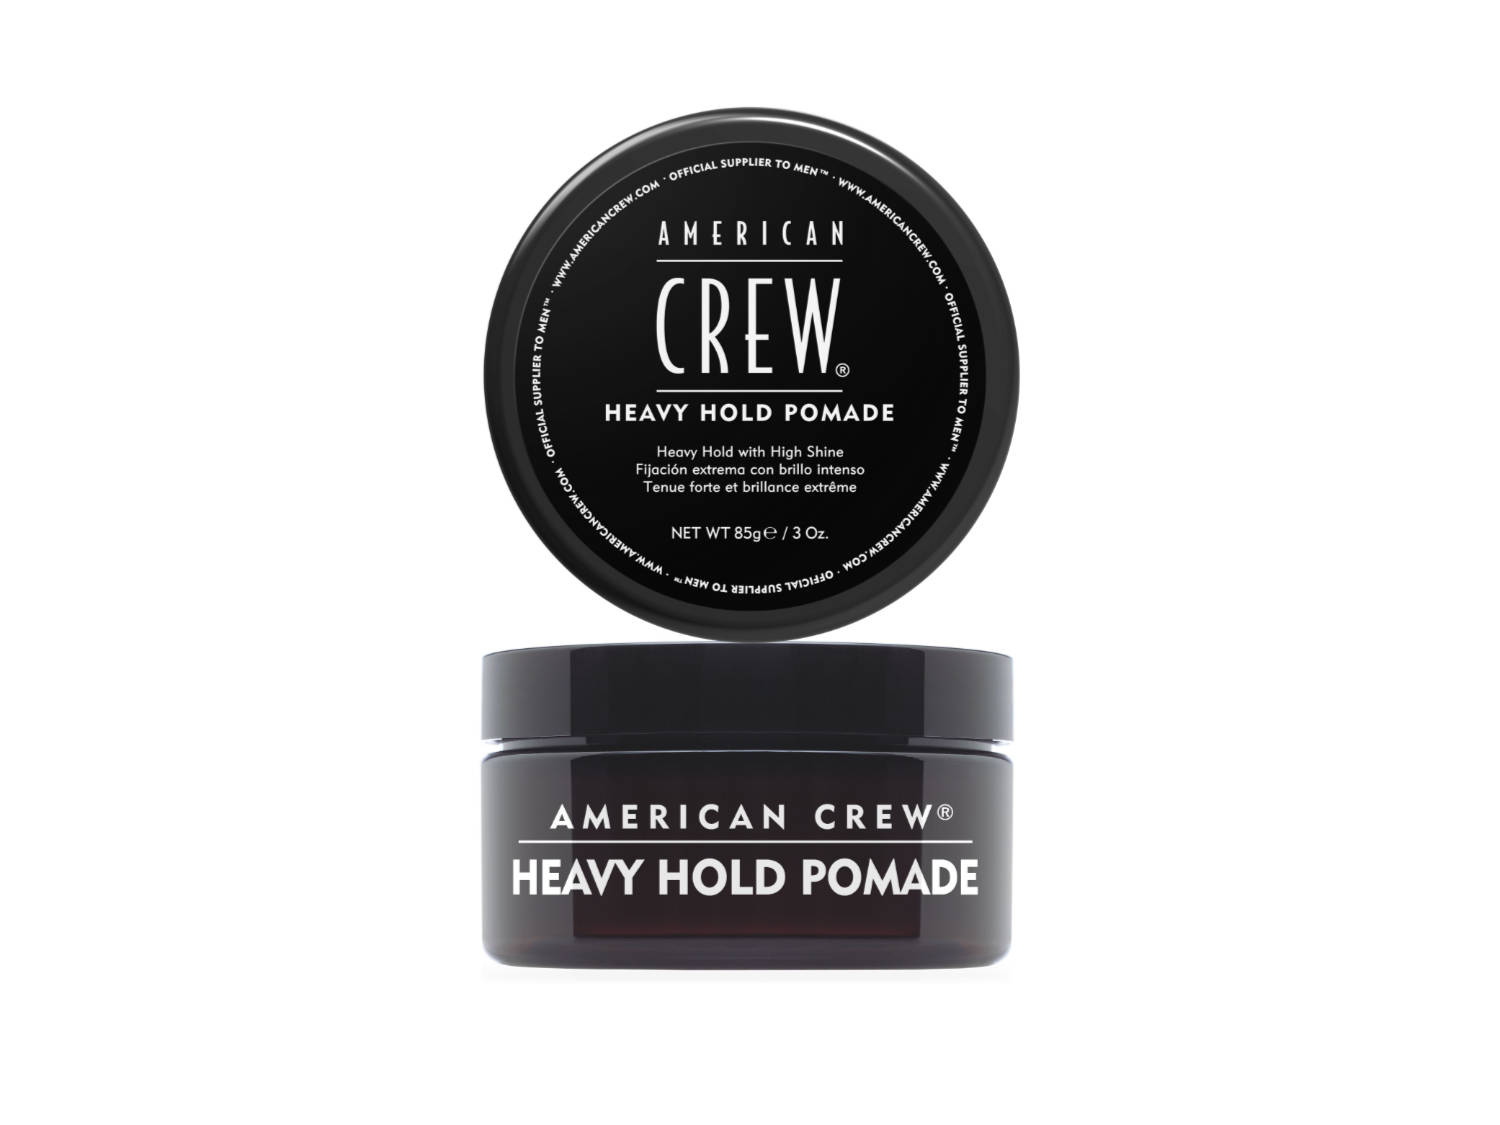 Arma Beauty - American Crew - Heavy Hold Pomade